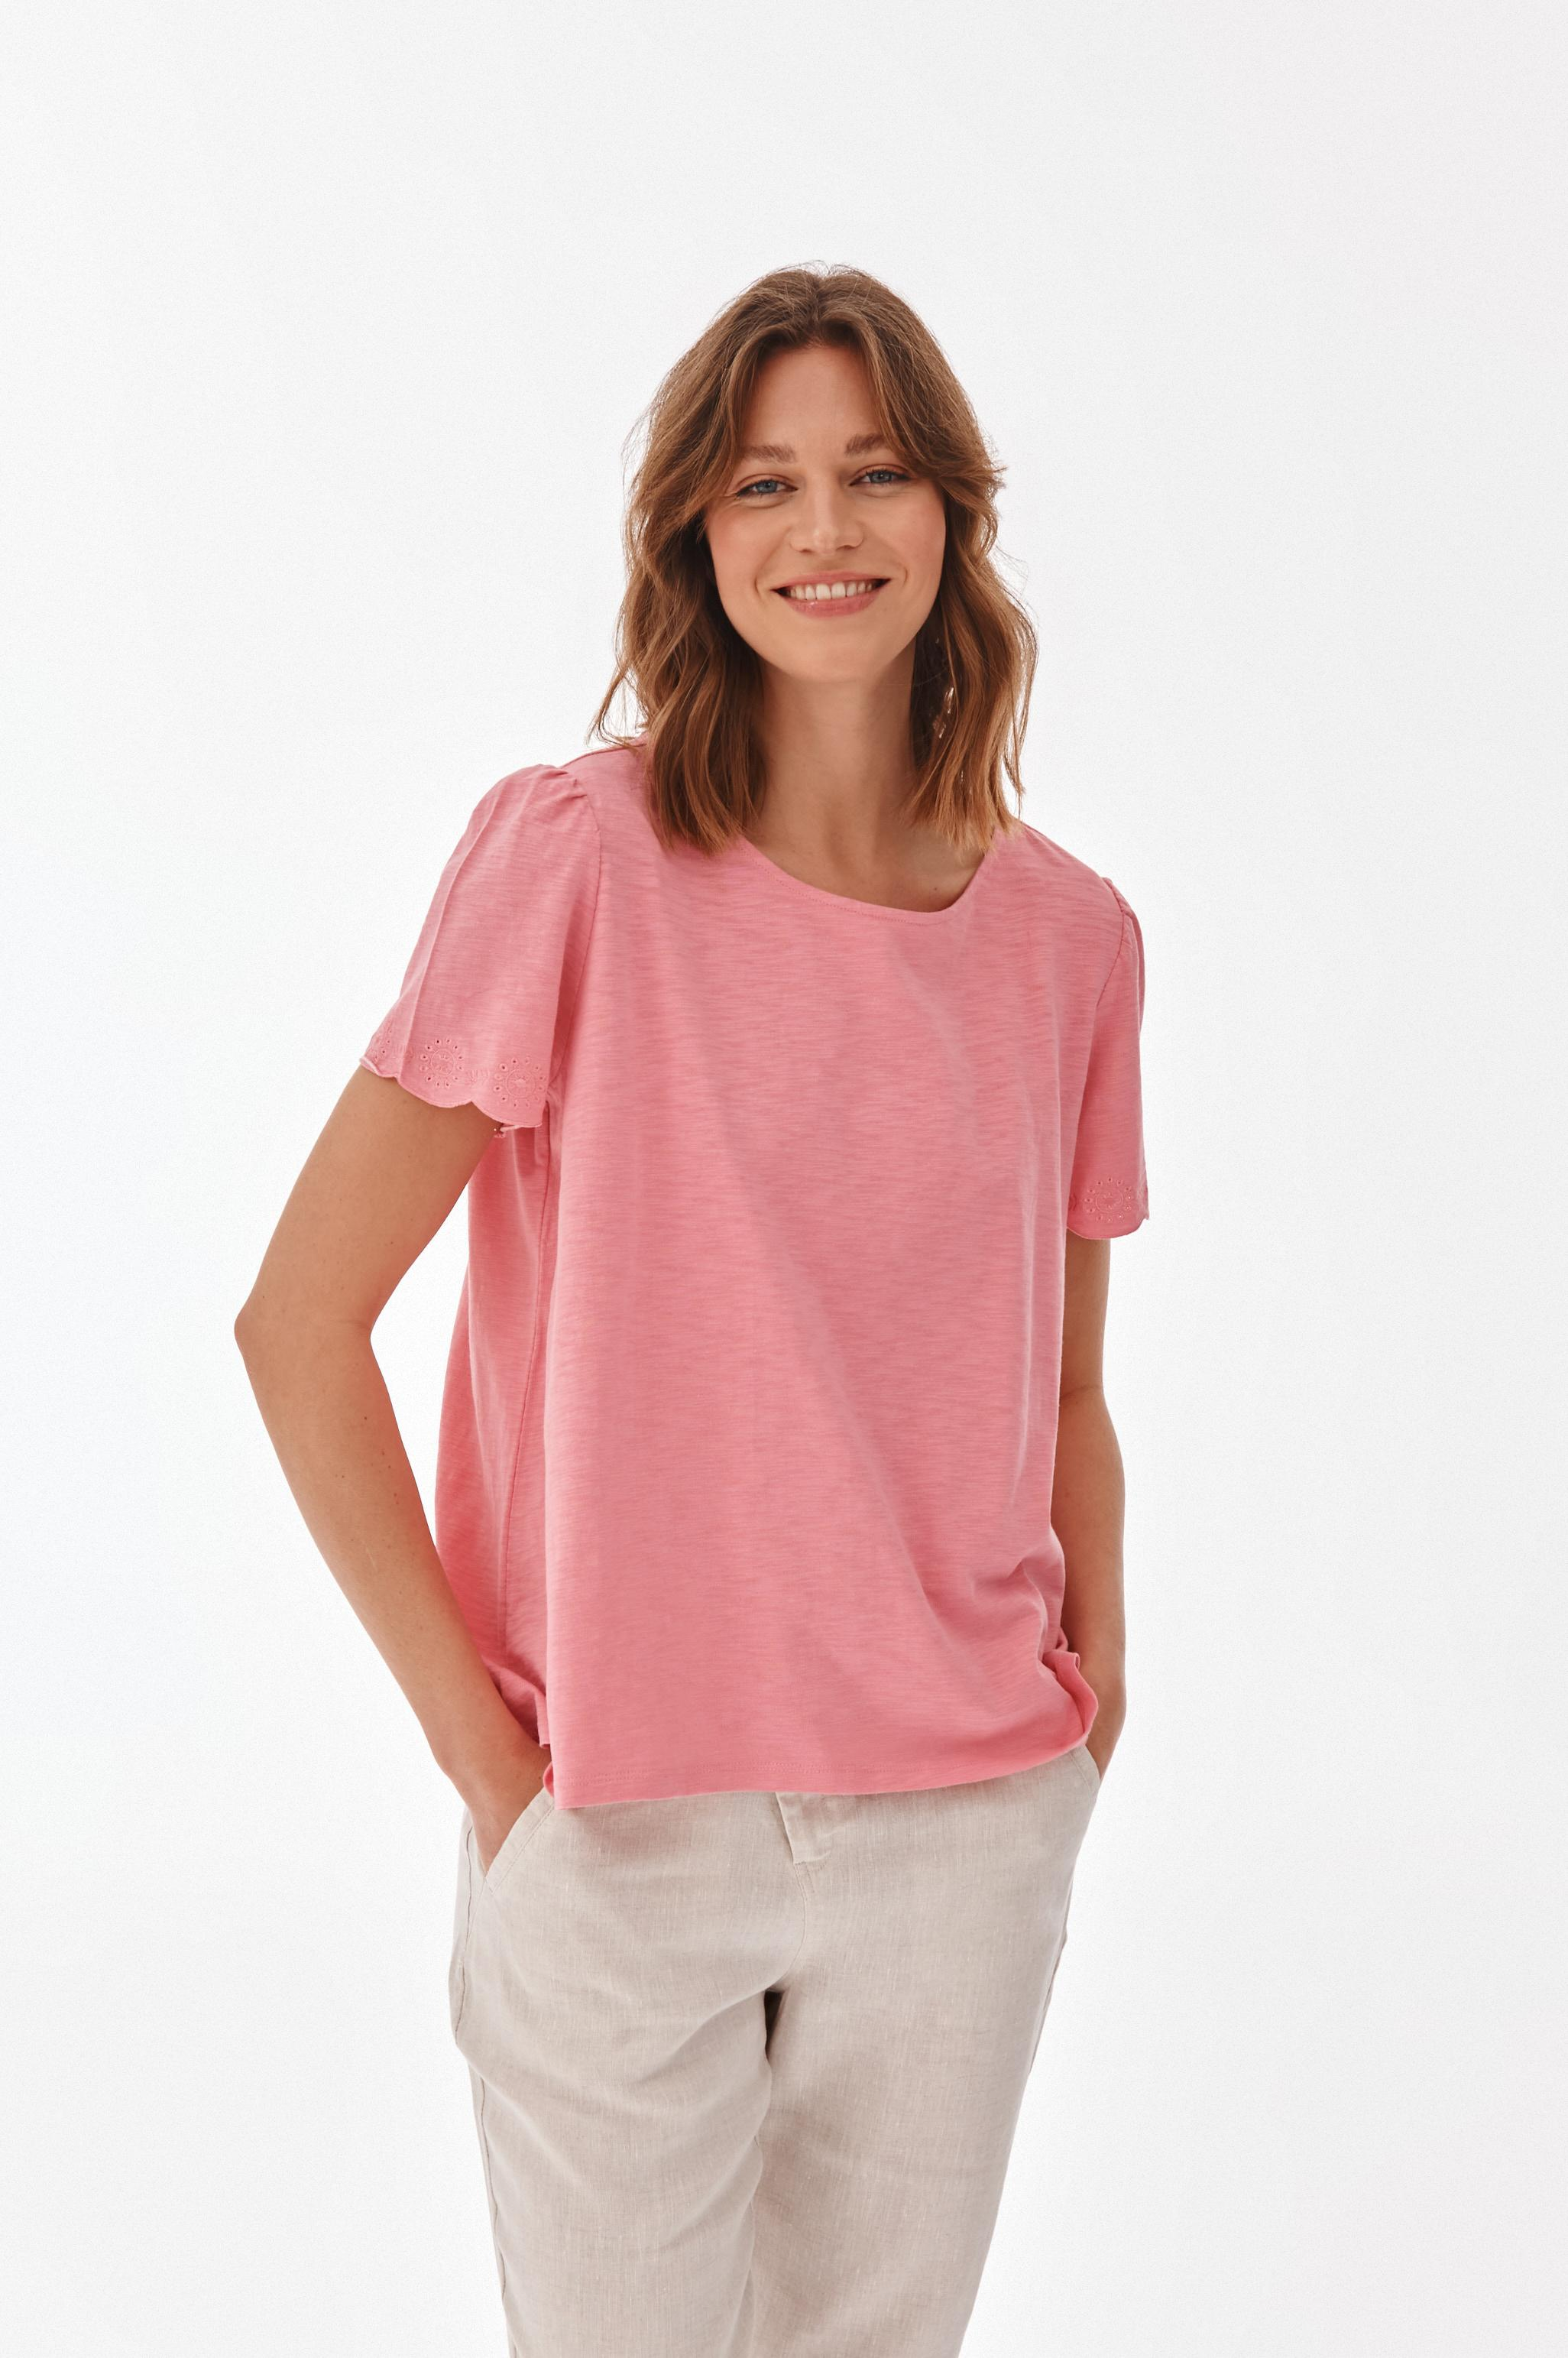 LADIES' KNITTED BLOUSE MORMI 1